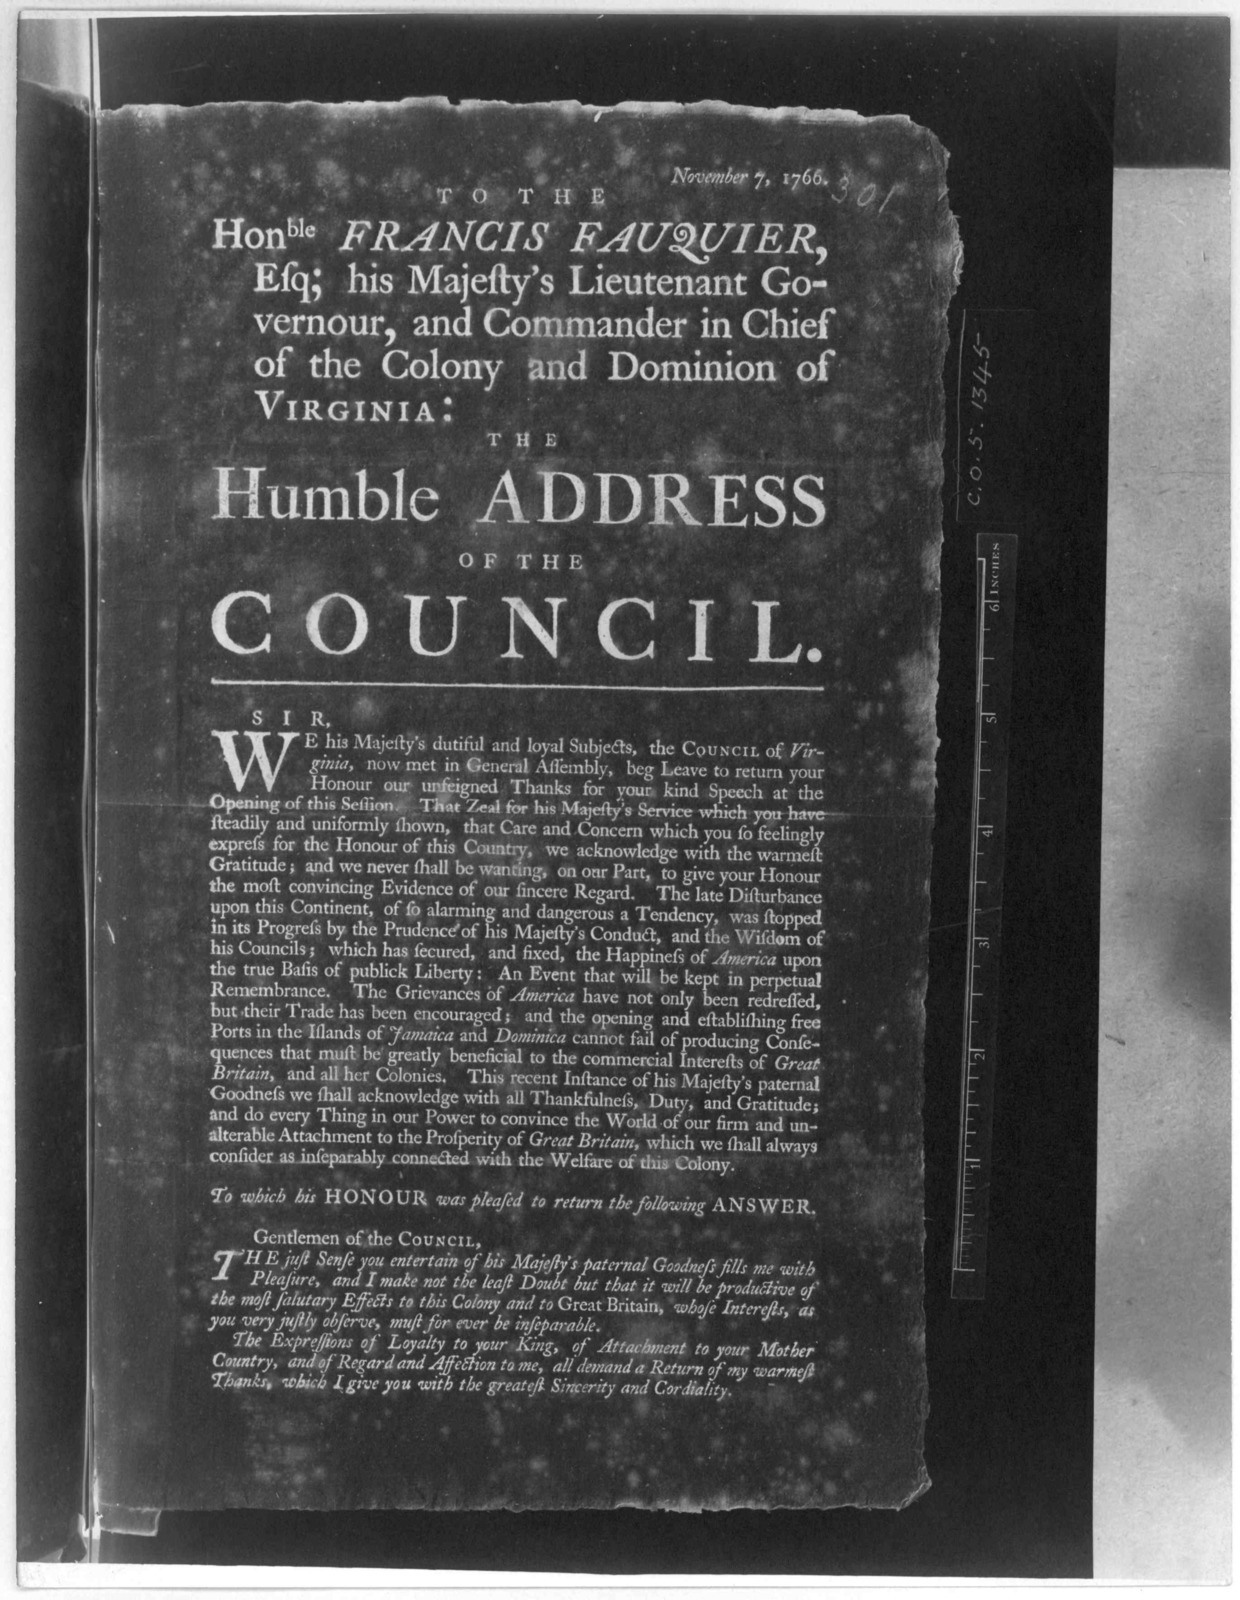 November 7, 1766. To the Honble Francis Fauquier. Esq; his Majesty's Lieutenant Governour, and Commander in chief of the Colony and Dominions of Virginia; the humble address of the Council ... To which his Honour was pleased to return the follow